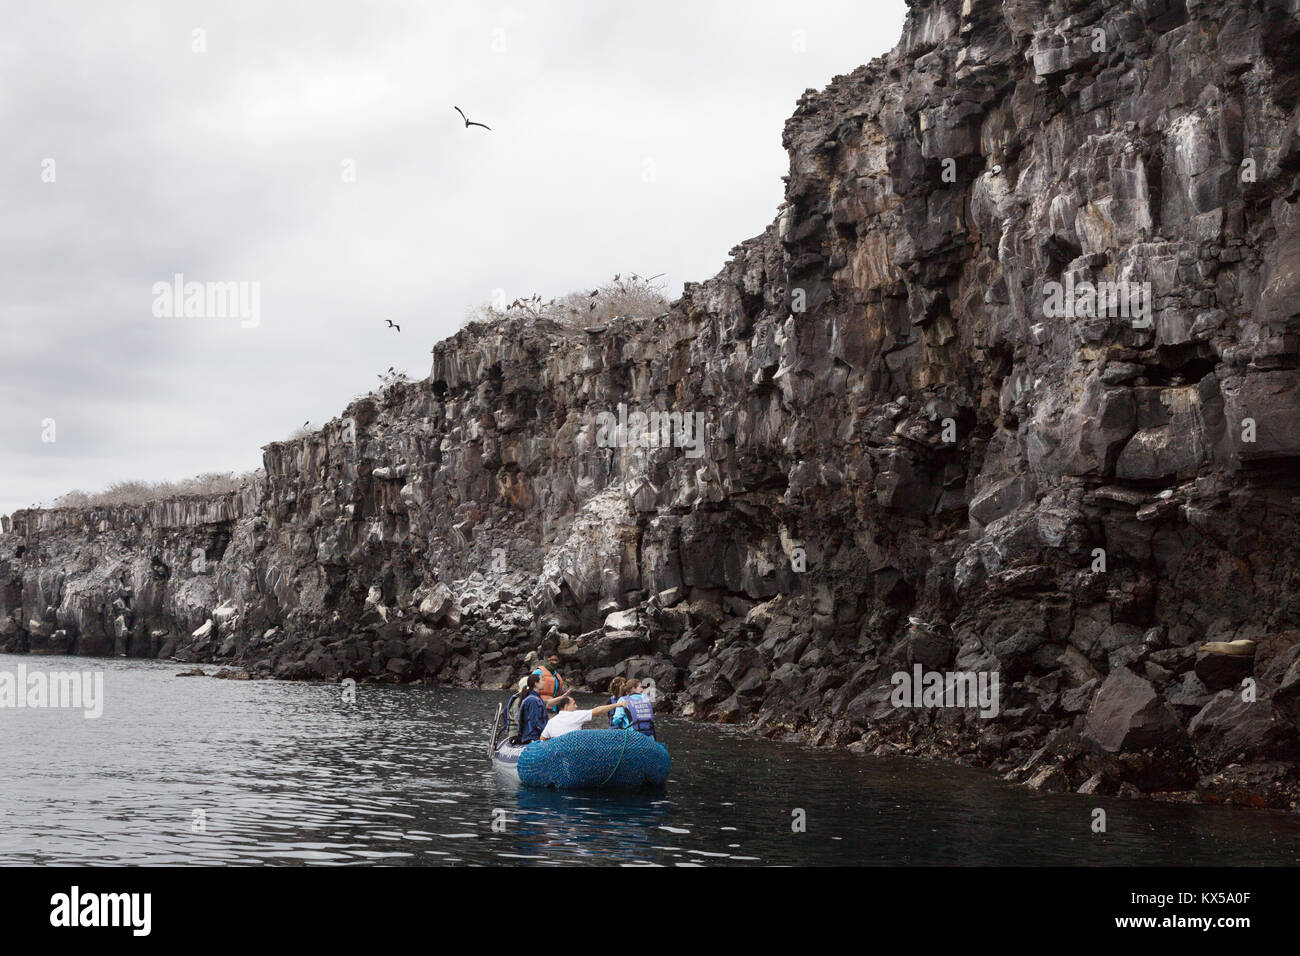 Tourists in a boat looking at birds on the lava rock cliffs, Genovesa Island, Galapagos Islands Ecuador South America - Stock Image